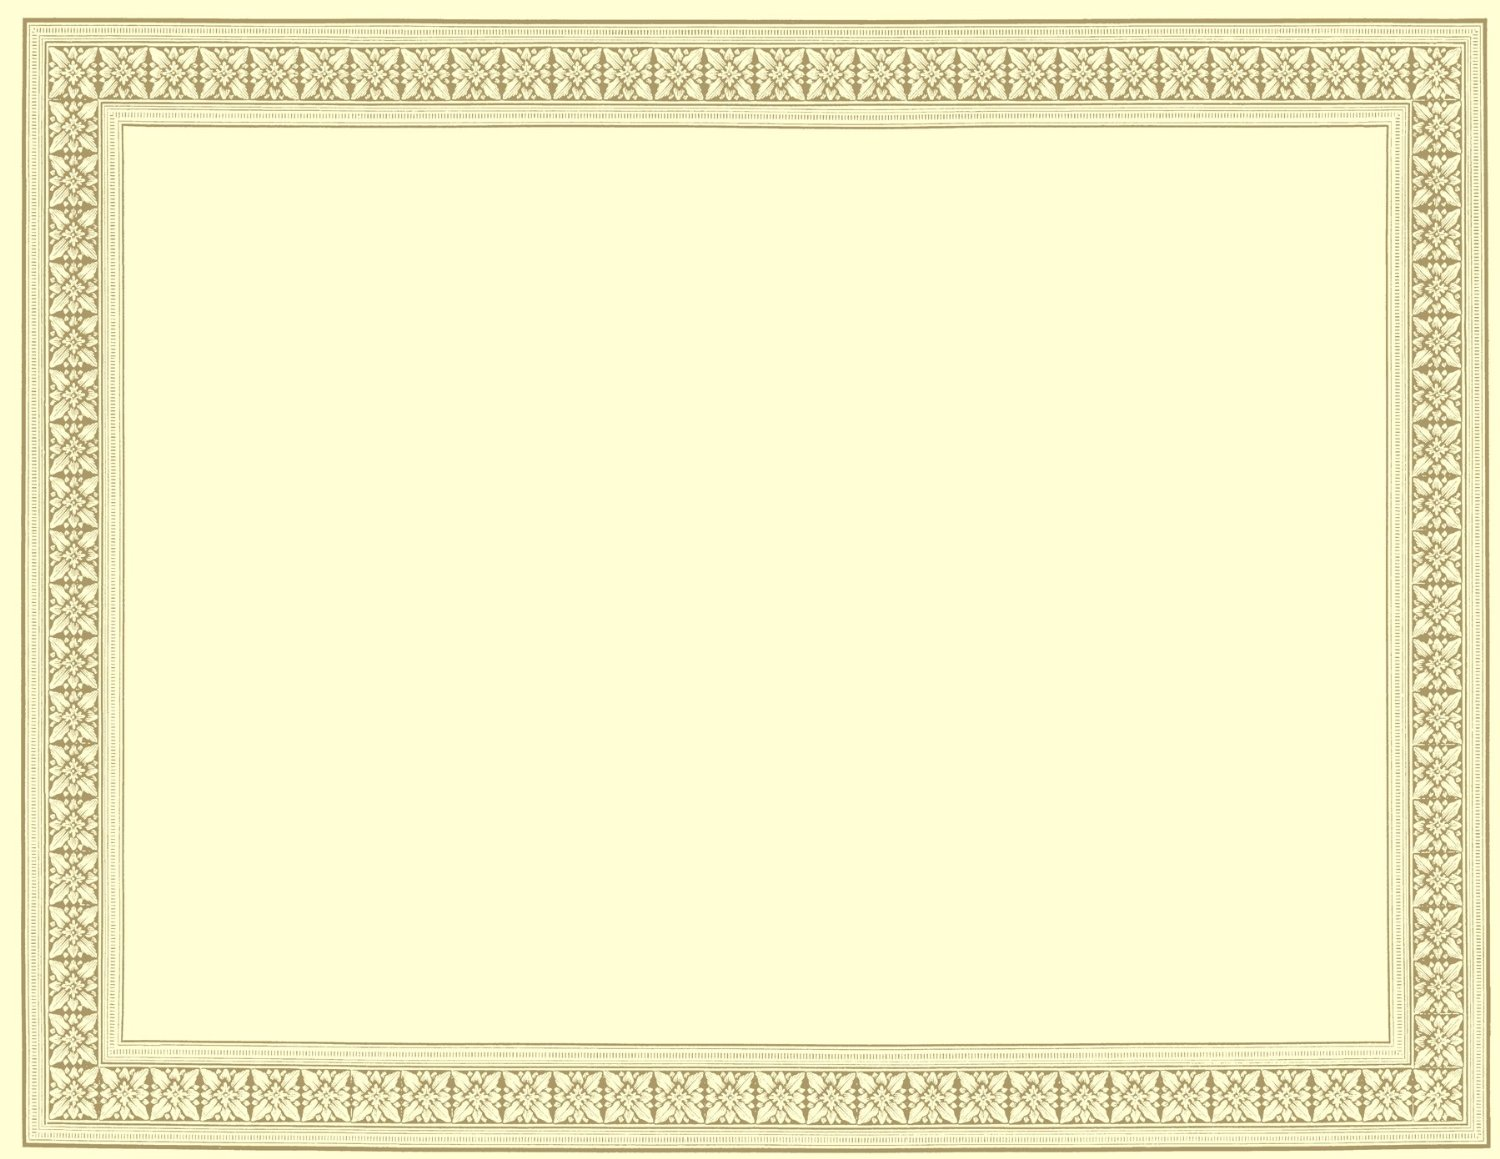 free certificate borders download